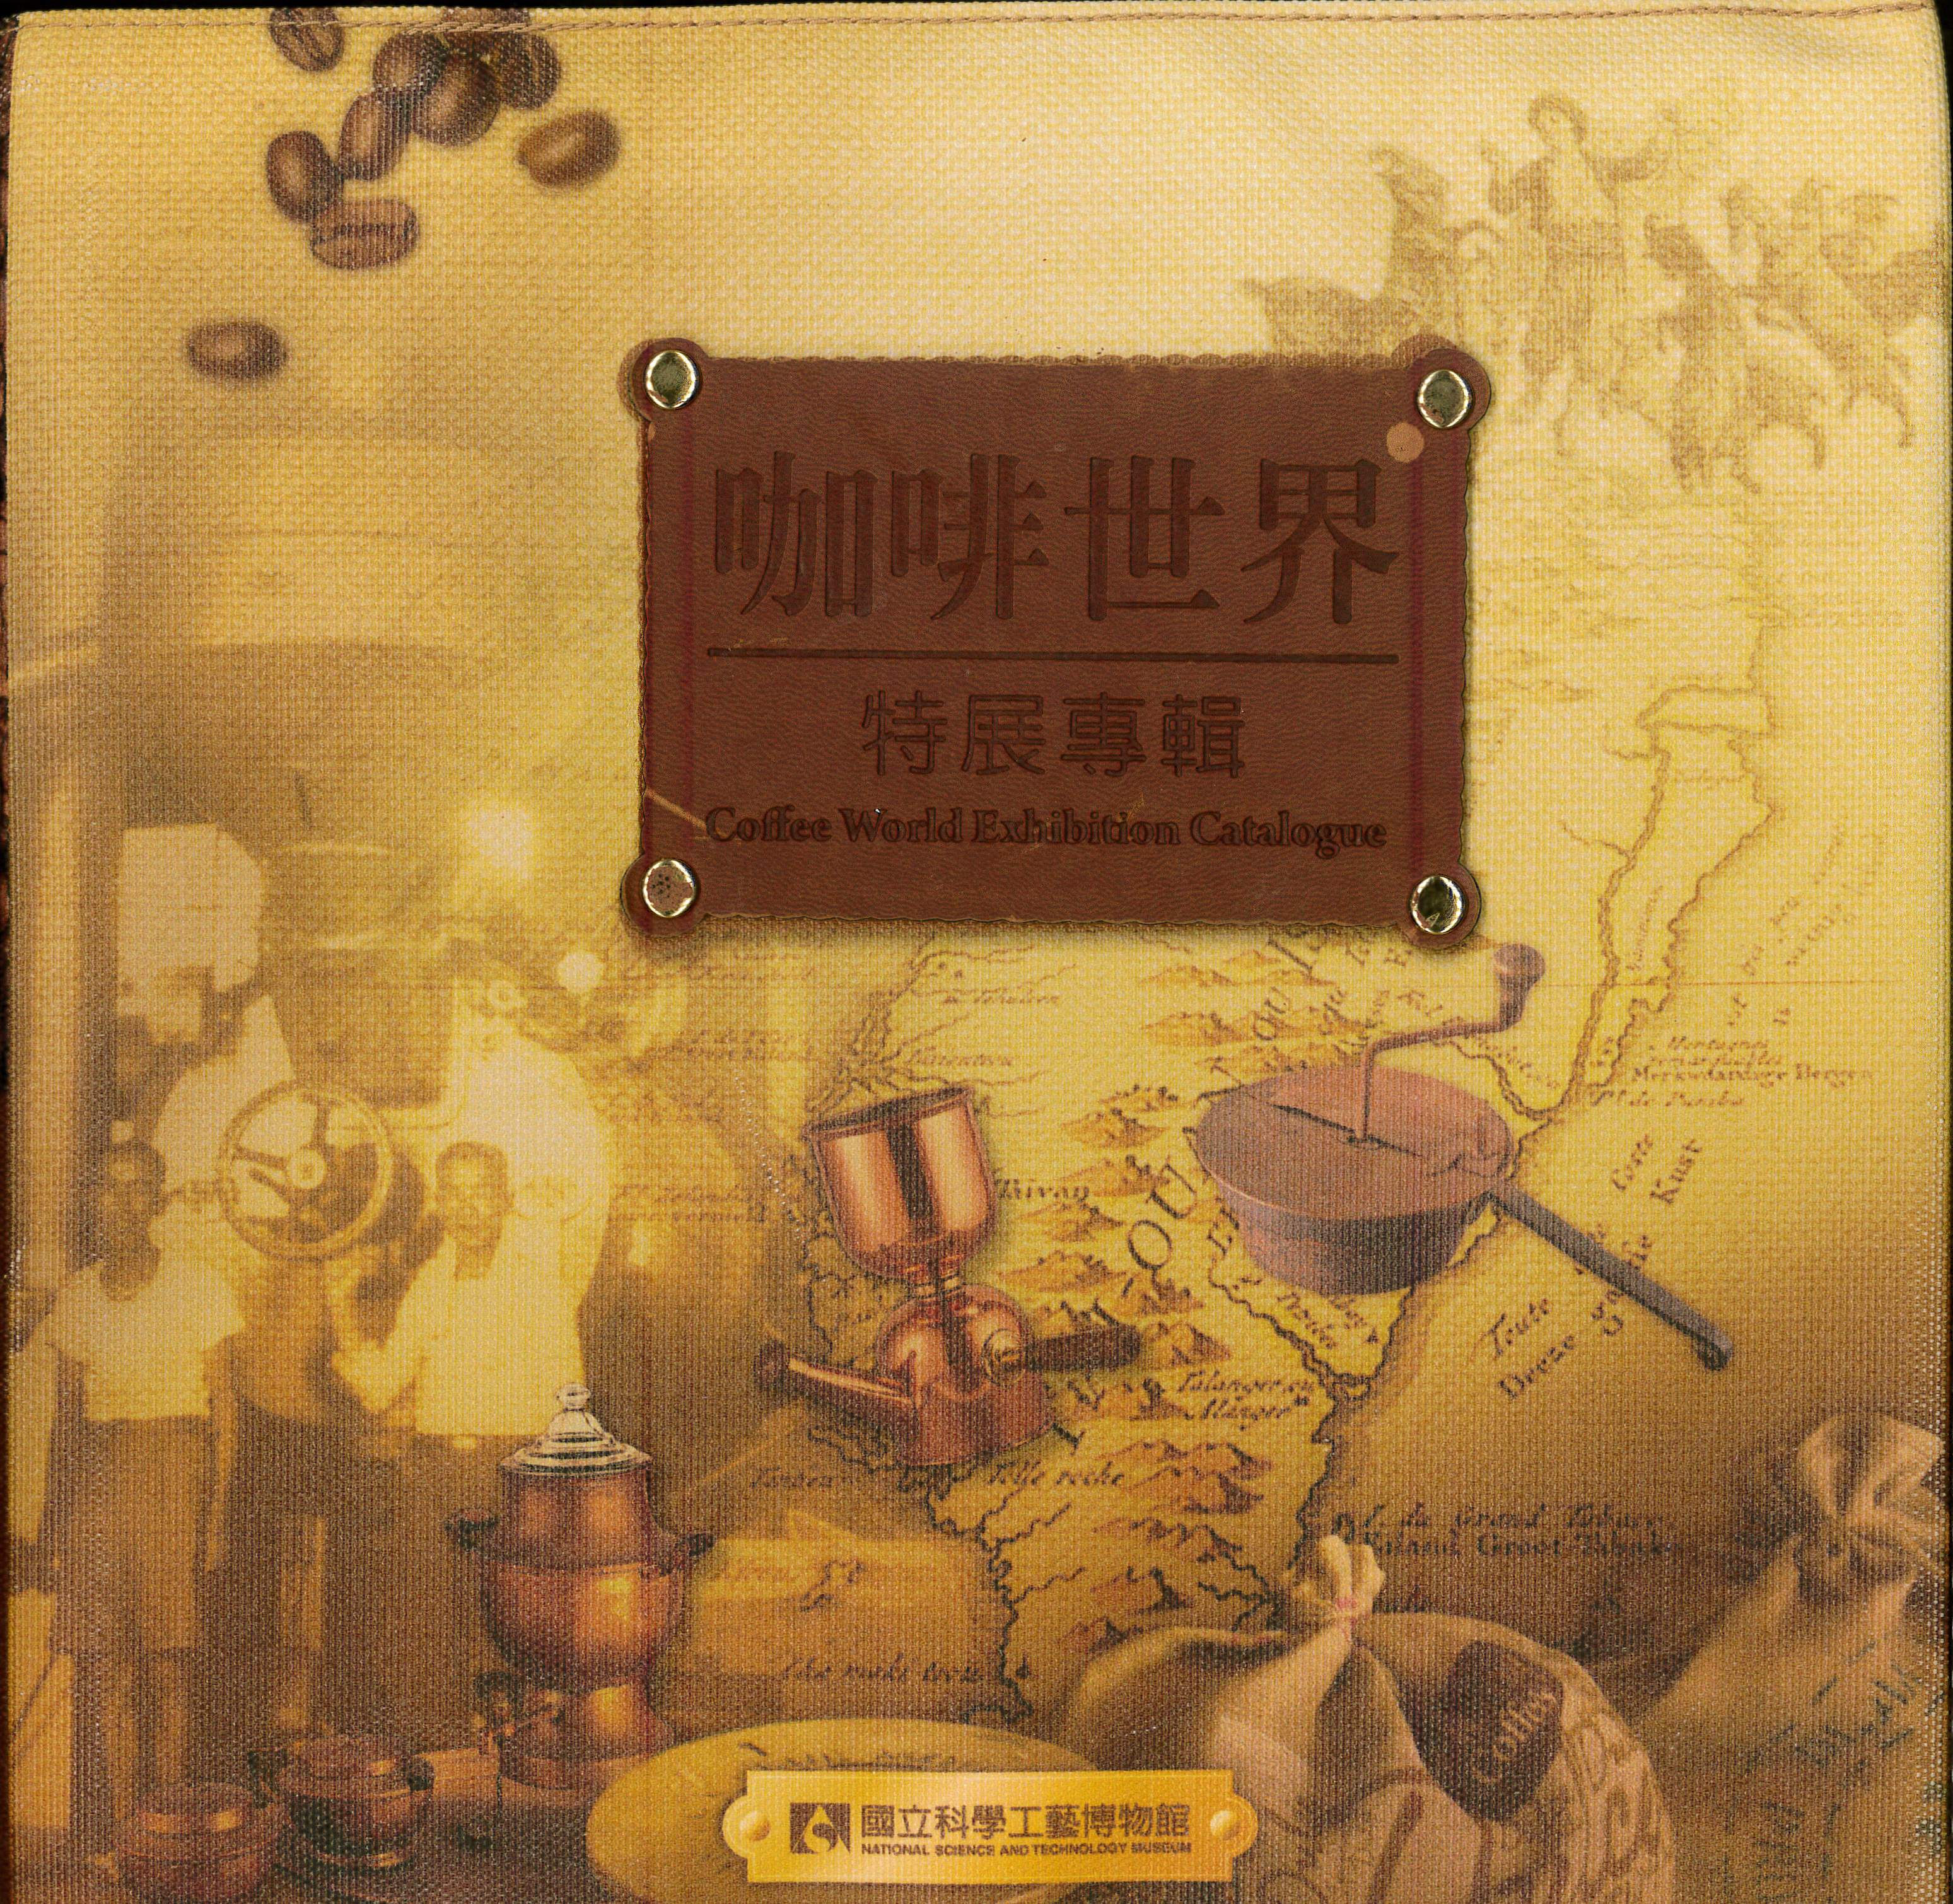 Coffee World Exhibition Catalogue